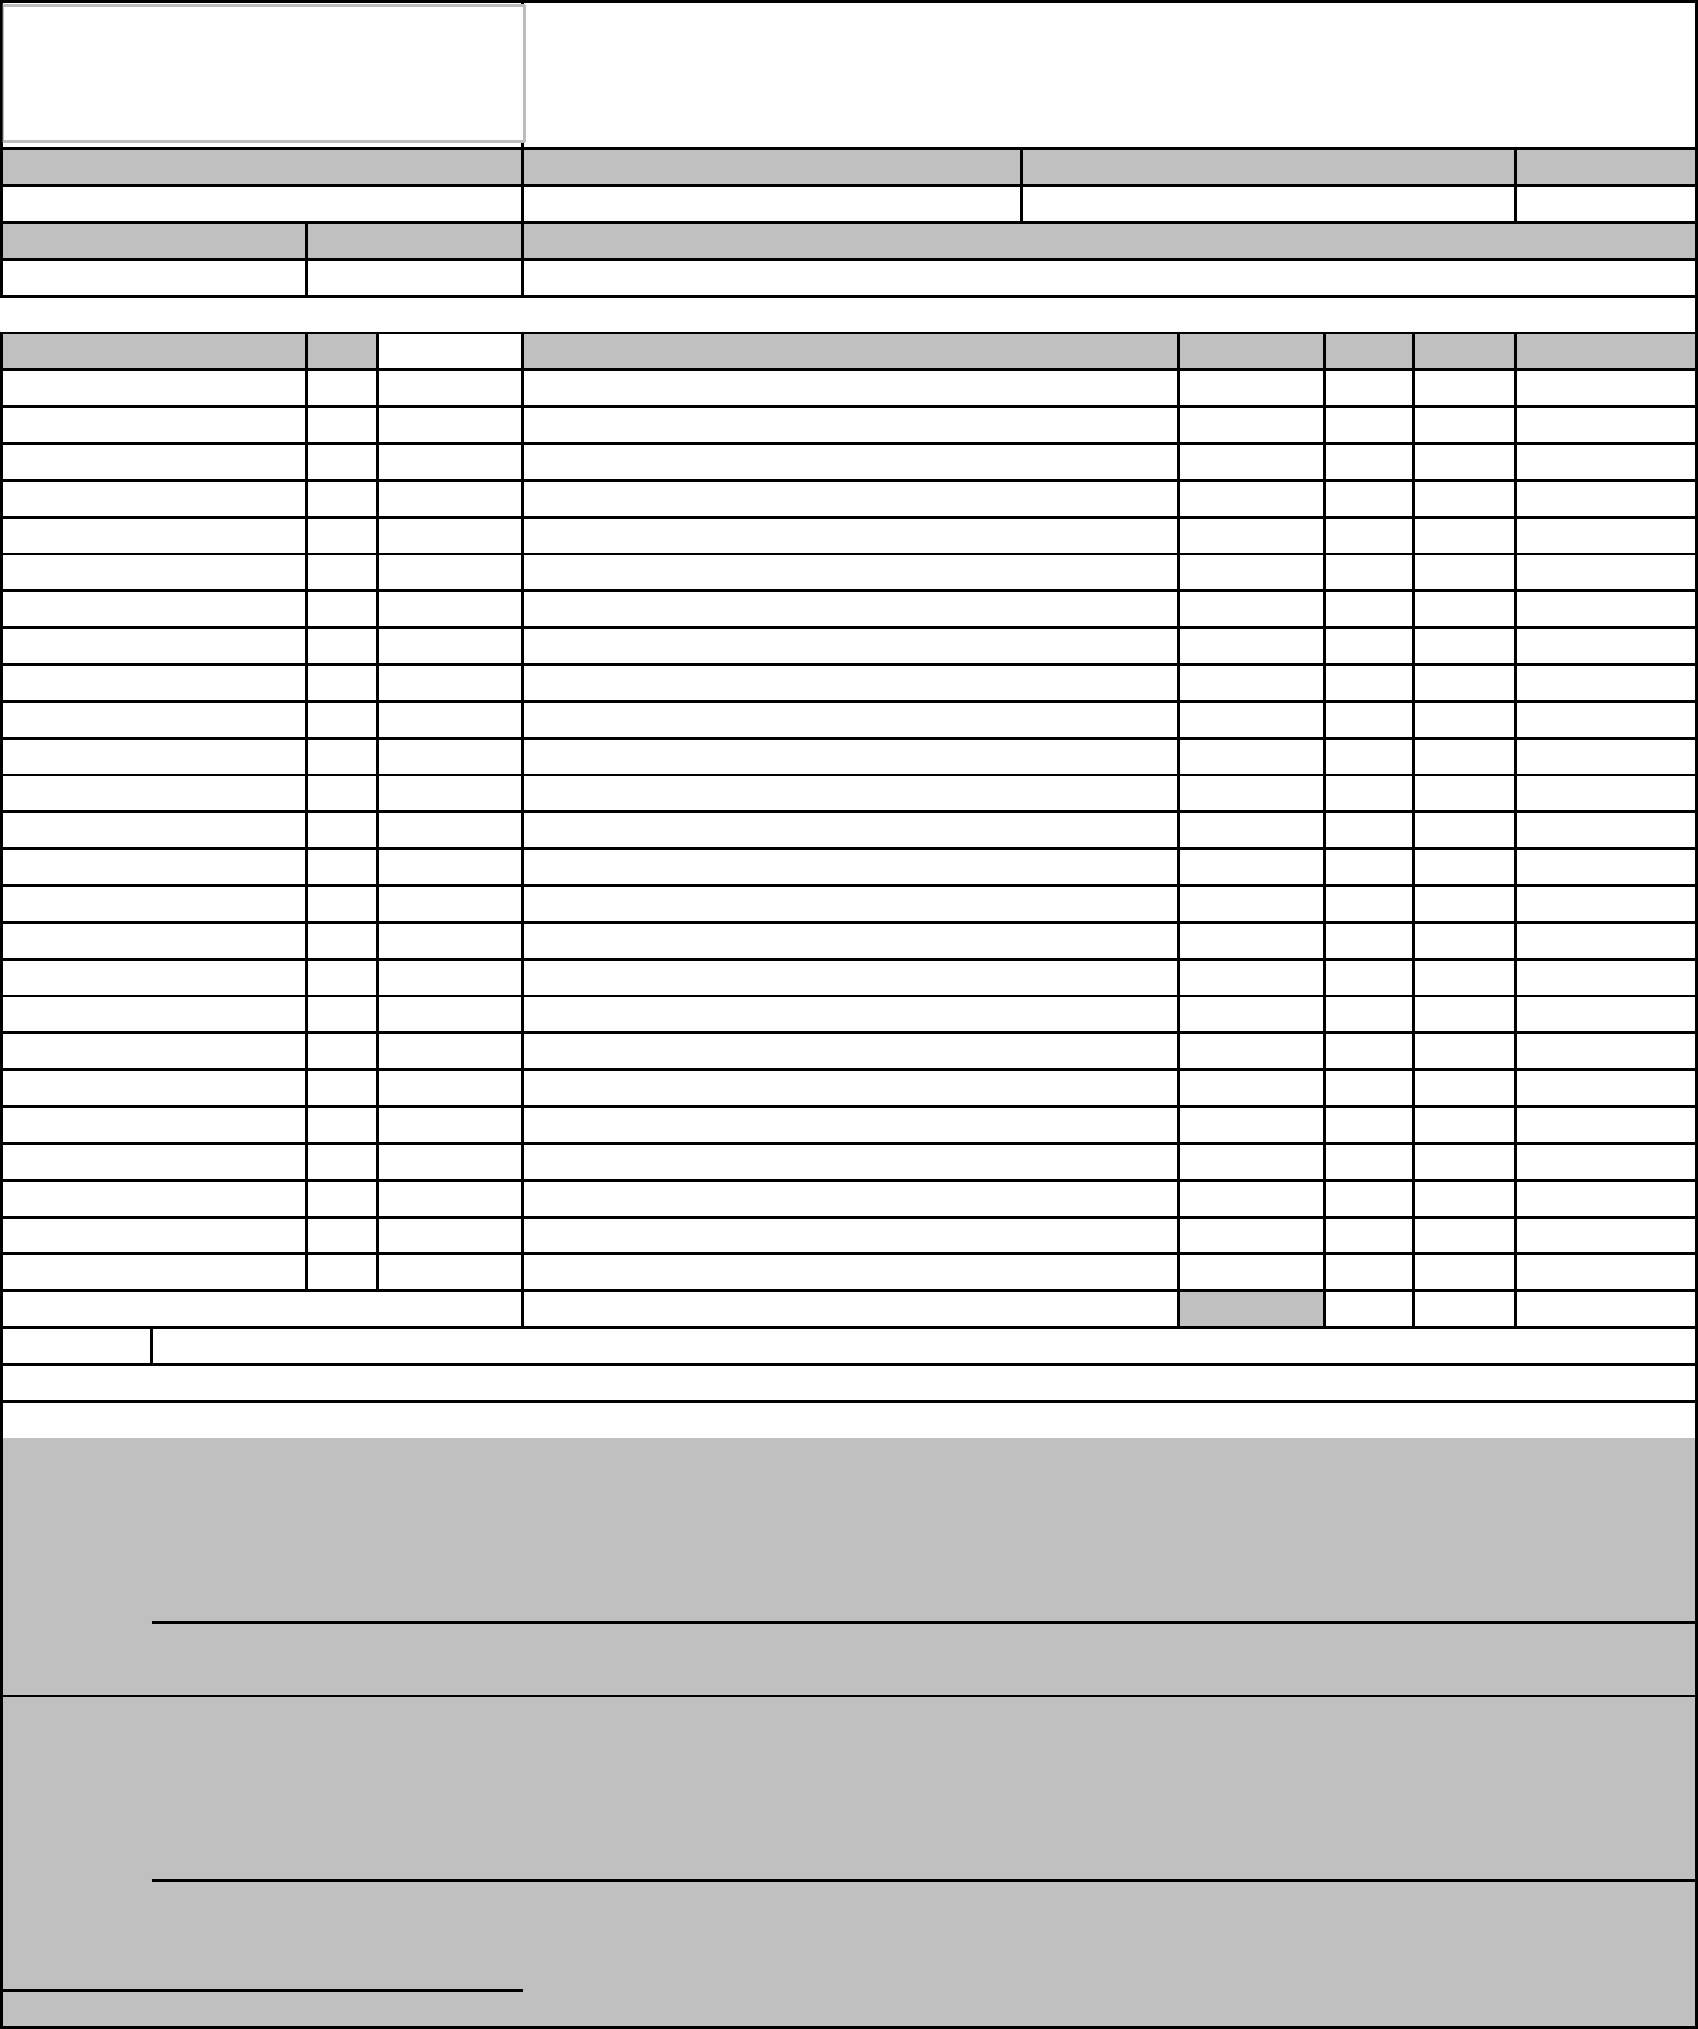 fixed asset transfer request form